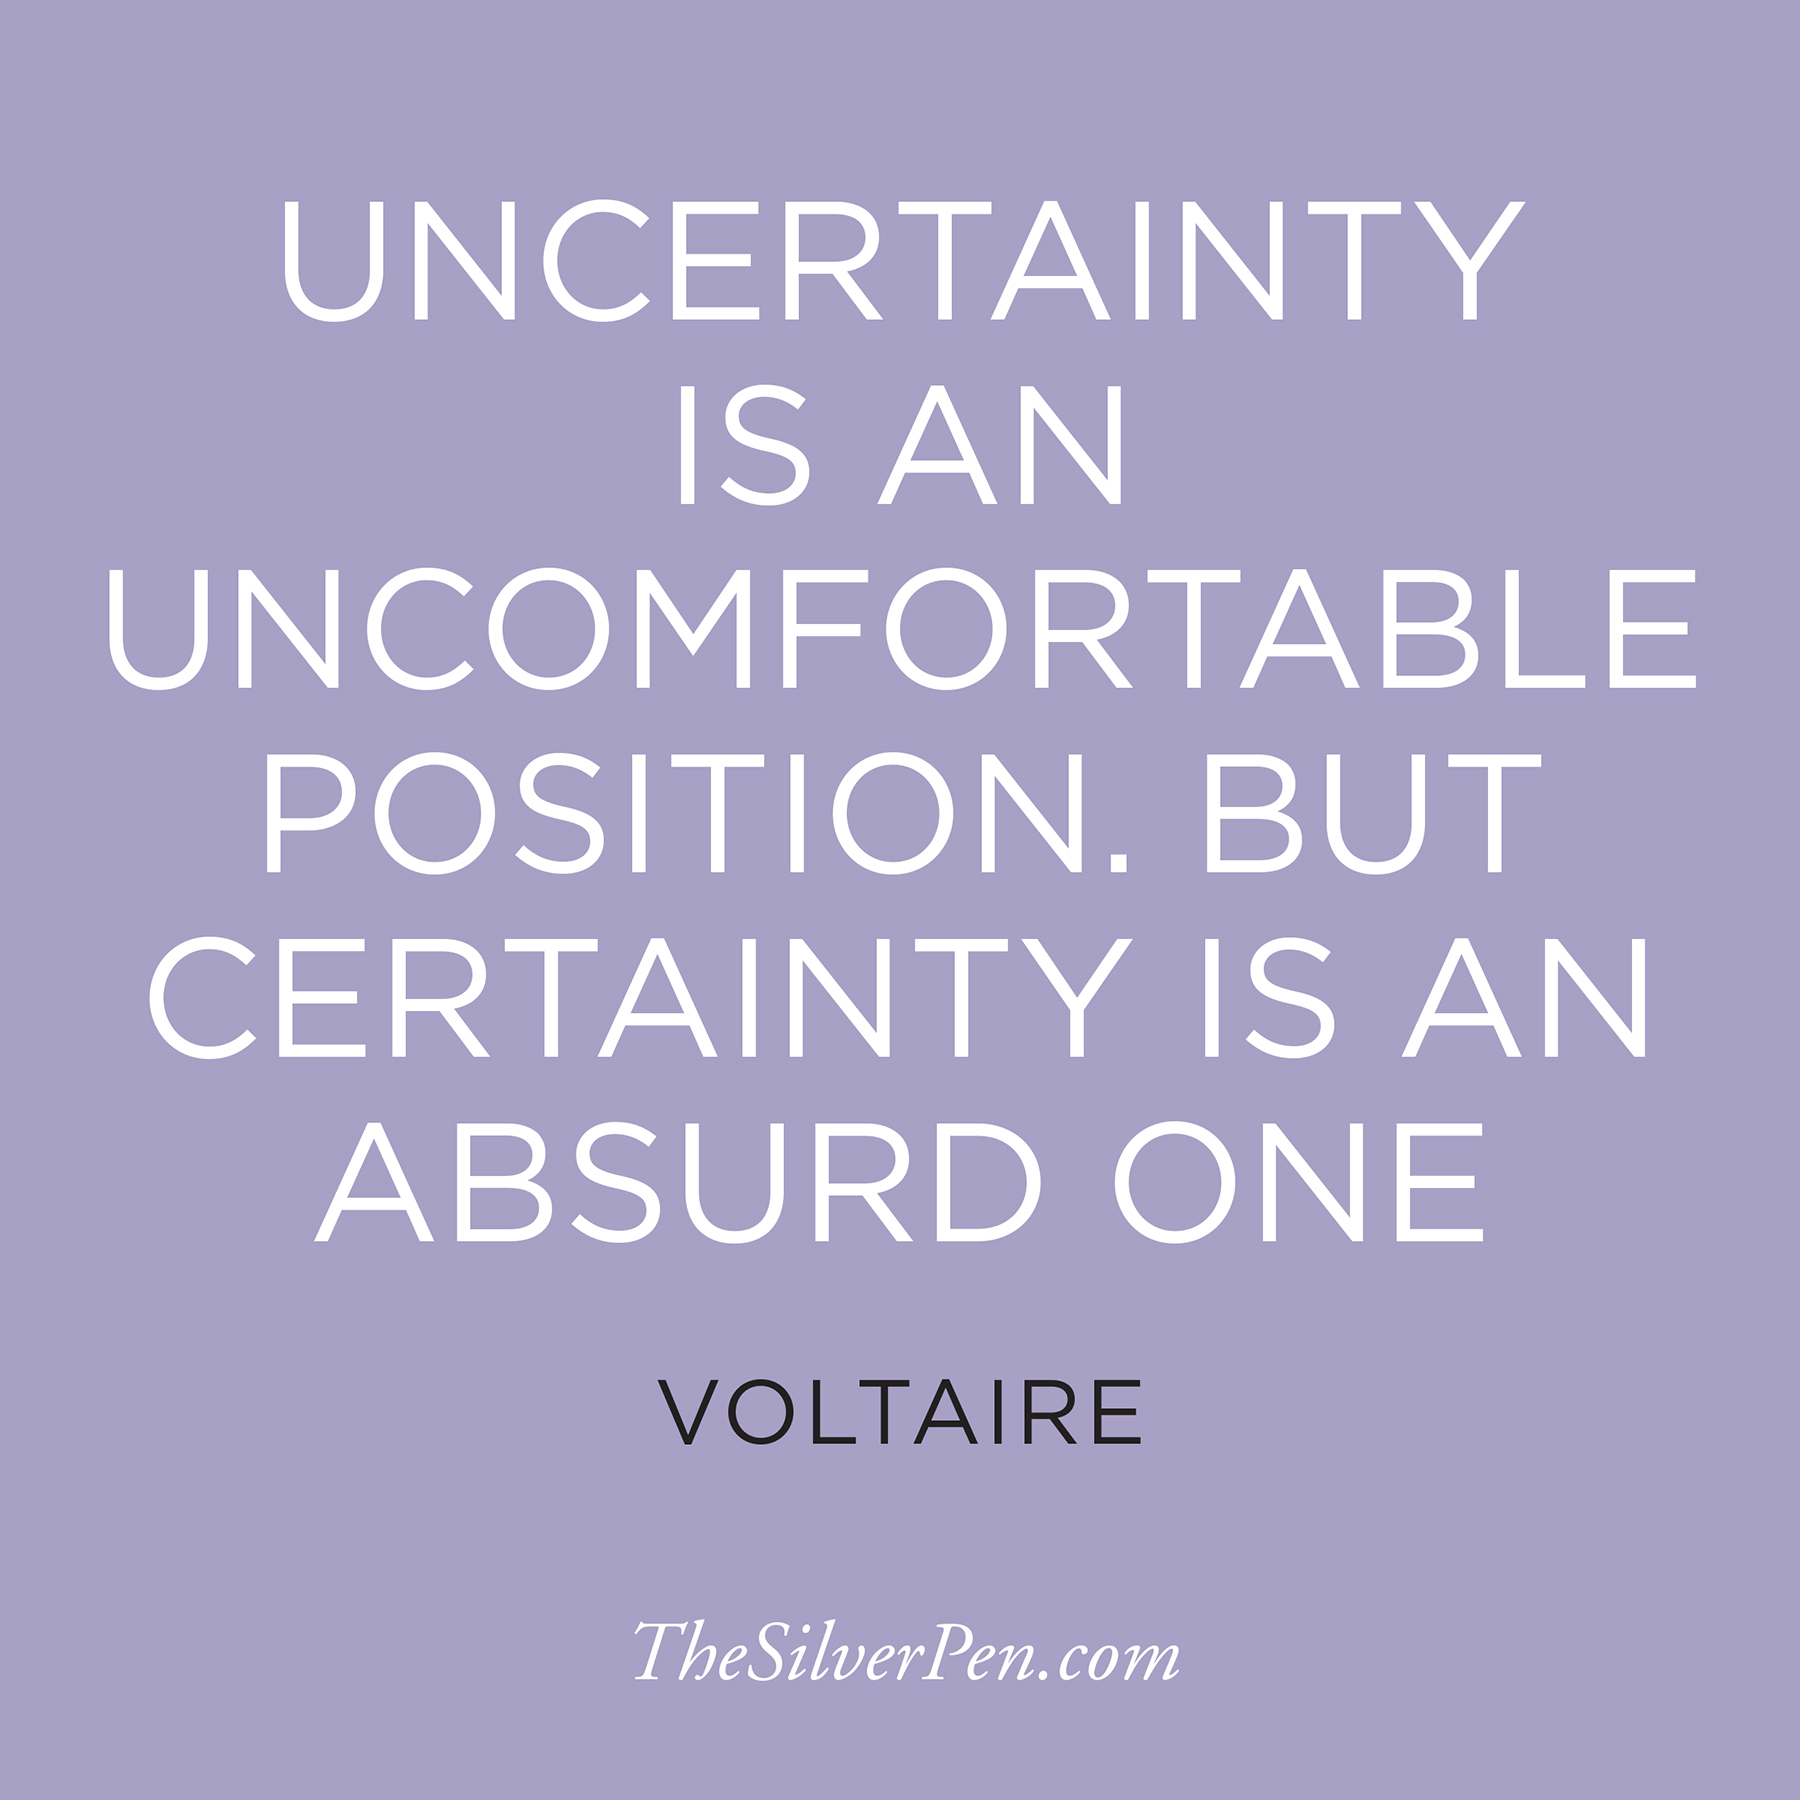 Quotes About Uncertainty In A Relationship: Inspirational Quotes Future Uncertainty. QuotesGram